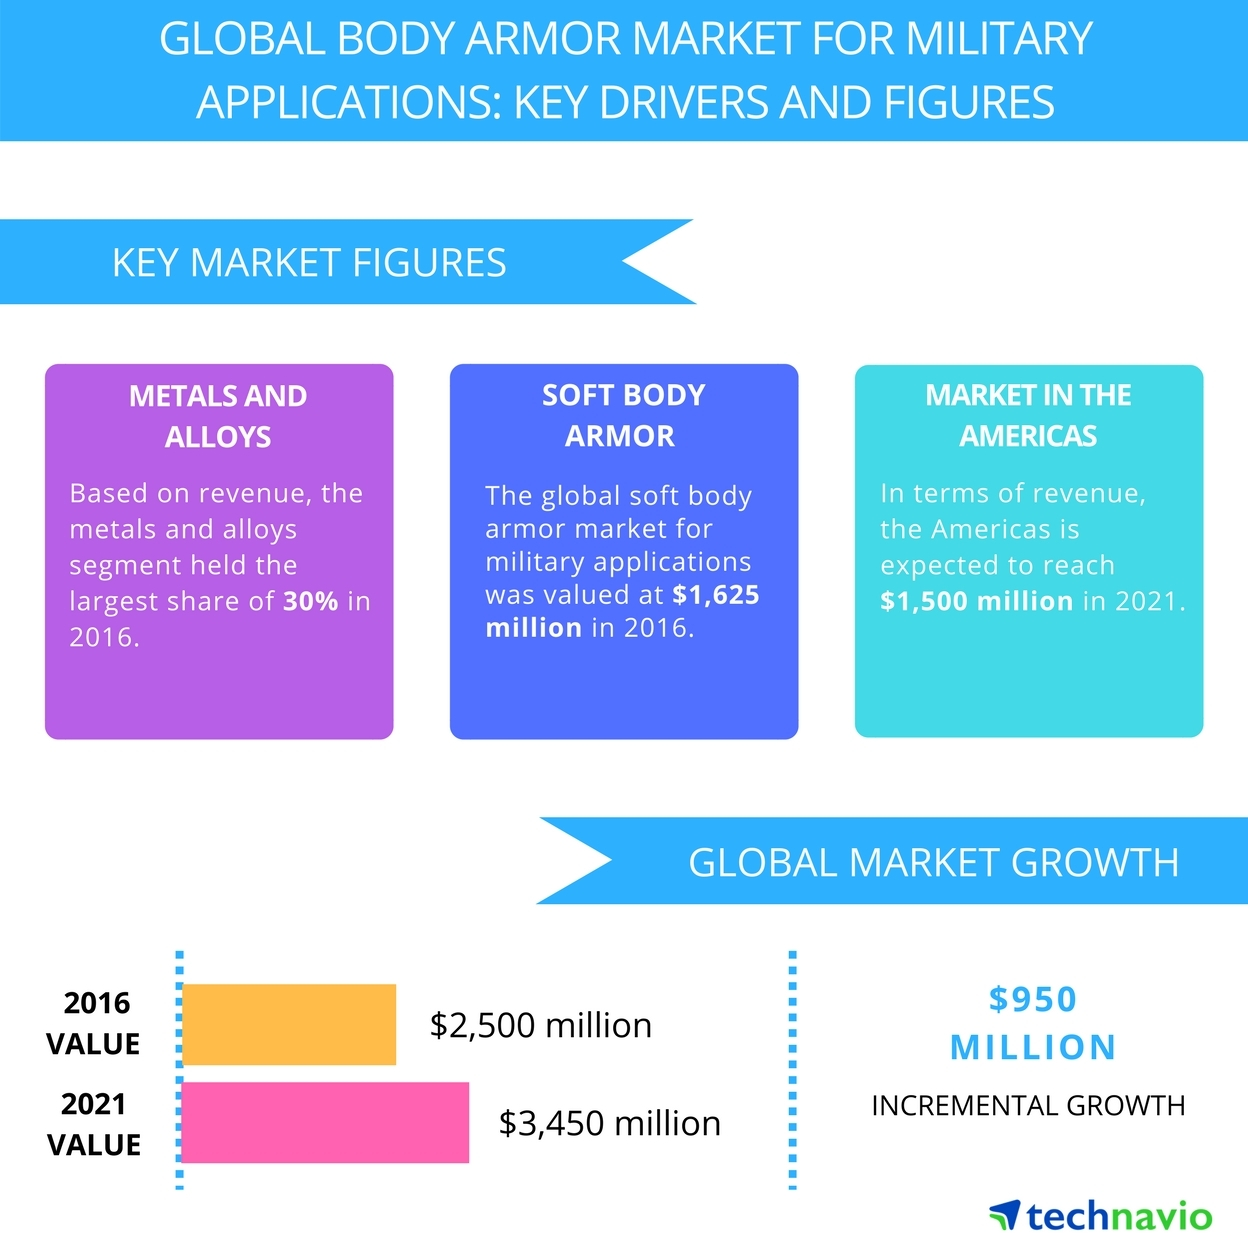 Technavio has published a new report on the global body armor market for military applications from 2017-2021. (Graphic: Business Wire)